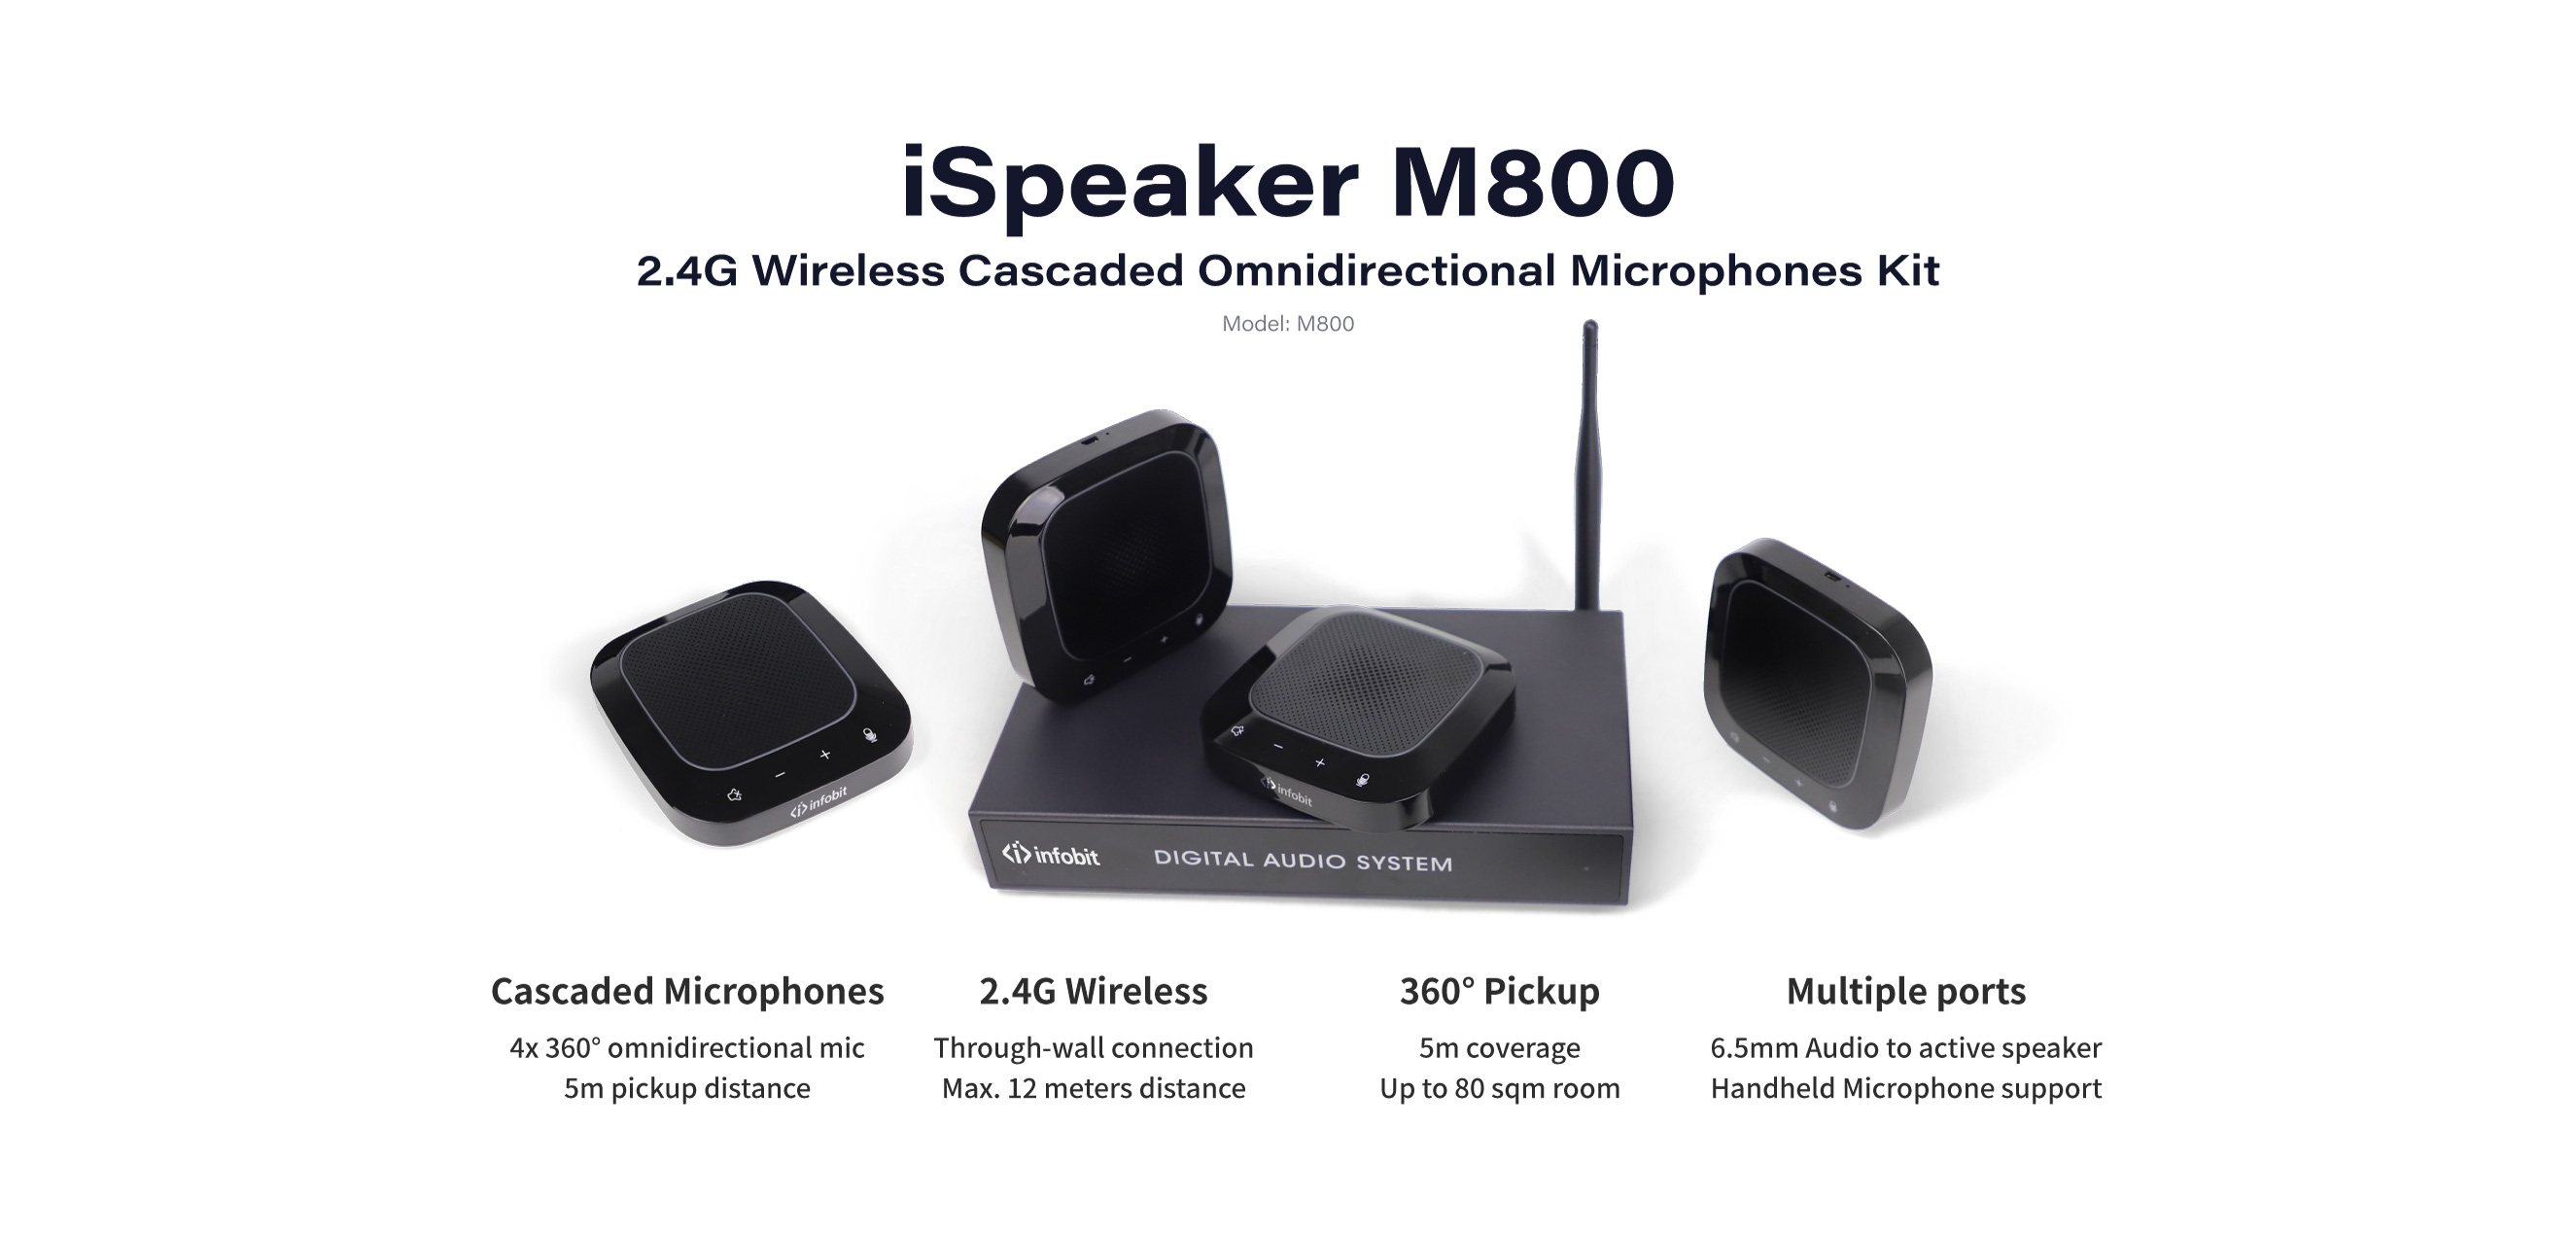 iSpeaker M800 daisy chain cascaded microphones